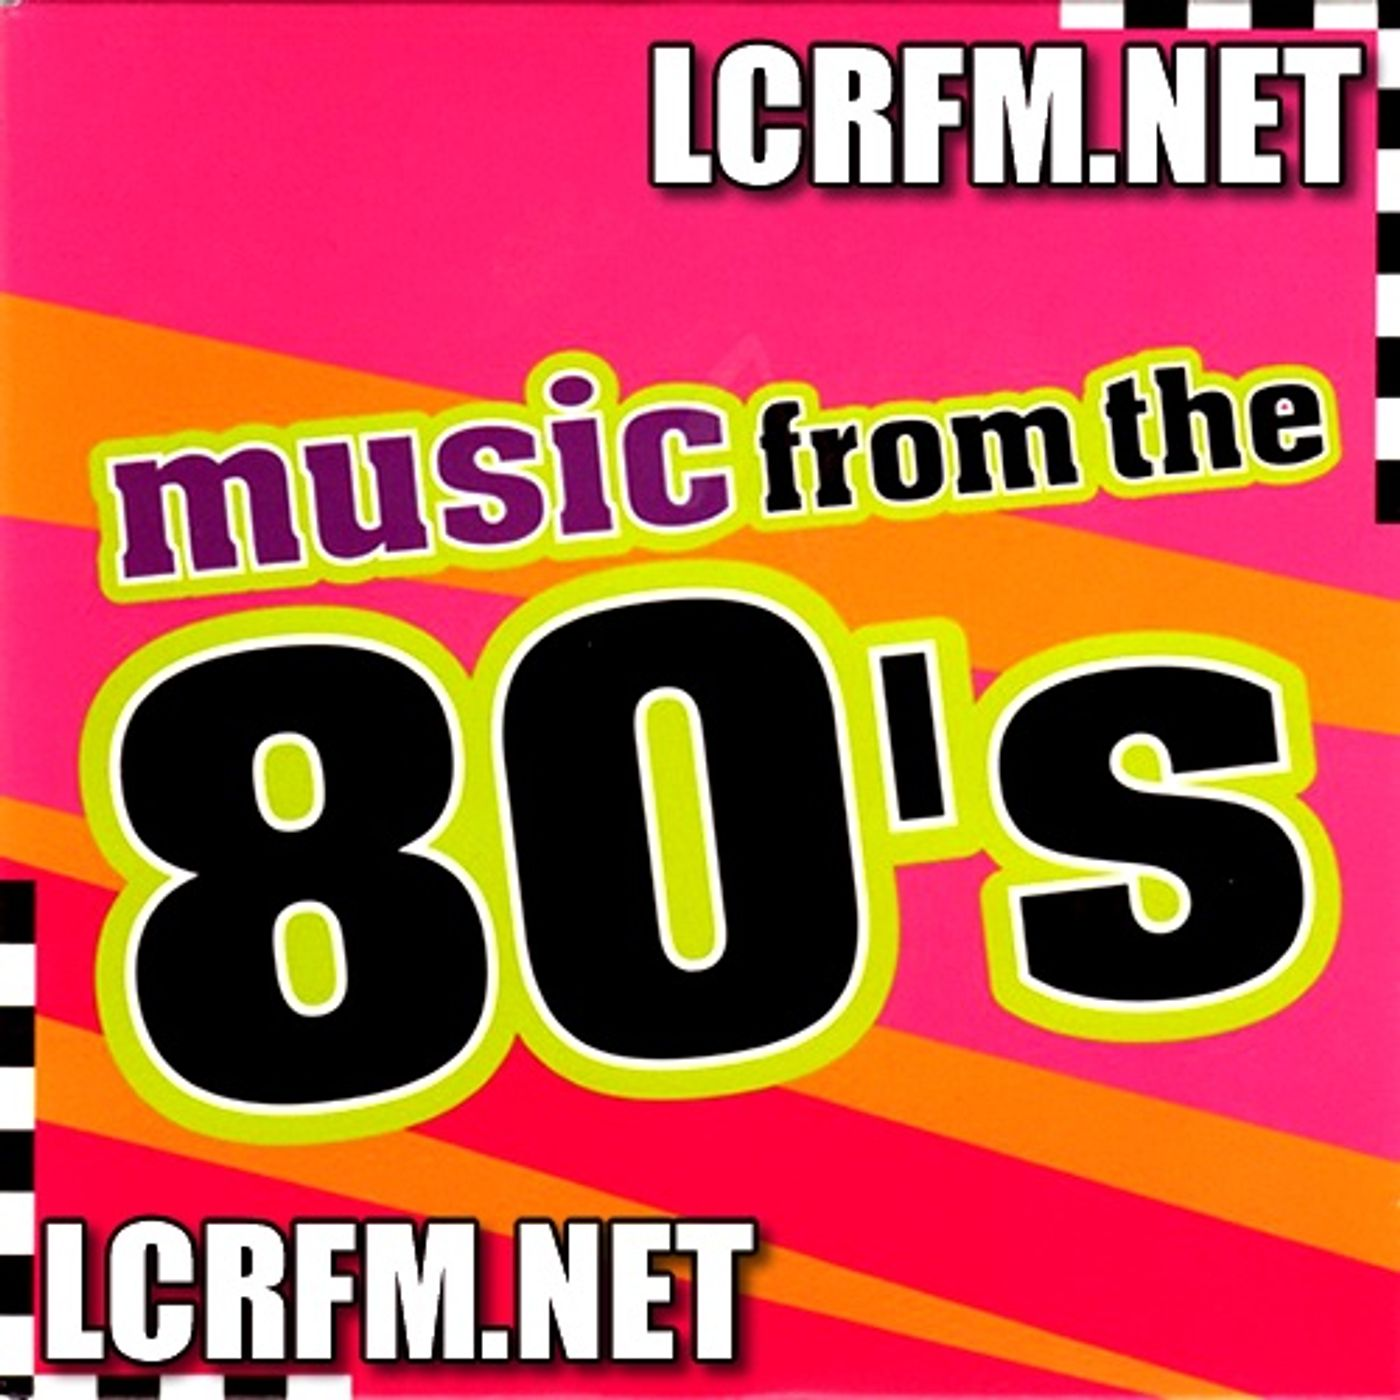 """The 80s : Part 2""... I Continue with my Theme on LCRFM"